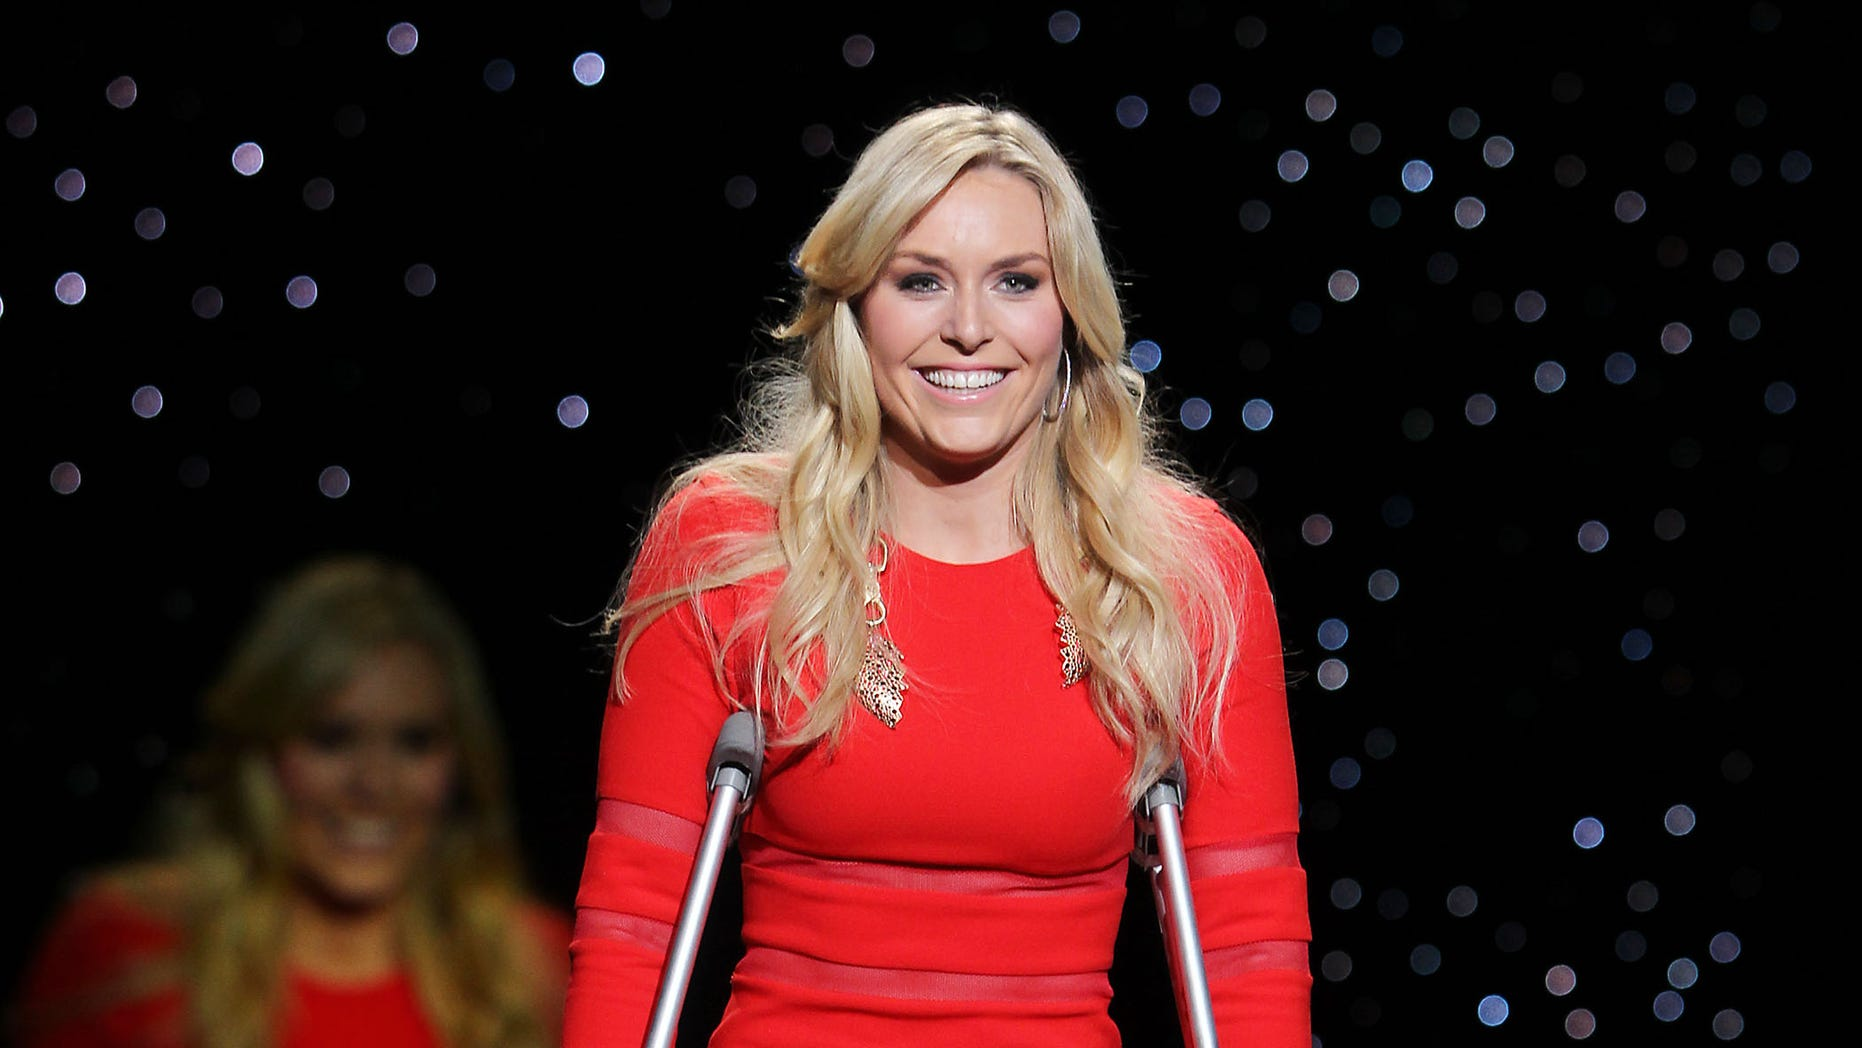 Feb. 6, 2014. Lindsey Vonn wearing Cynthia Rowley as she participates in the Go Red For Women-The Heart Truth Red Dress Collection show during Fashion Week in New York.